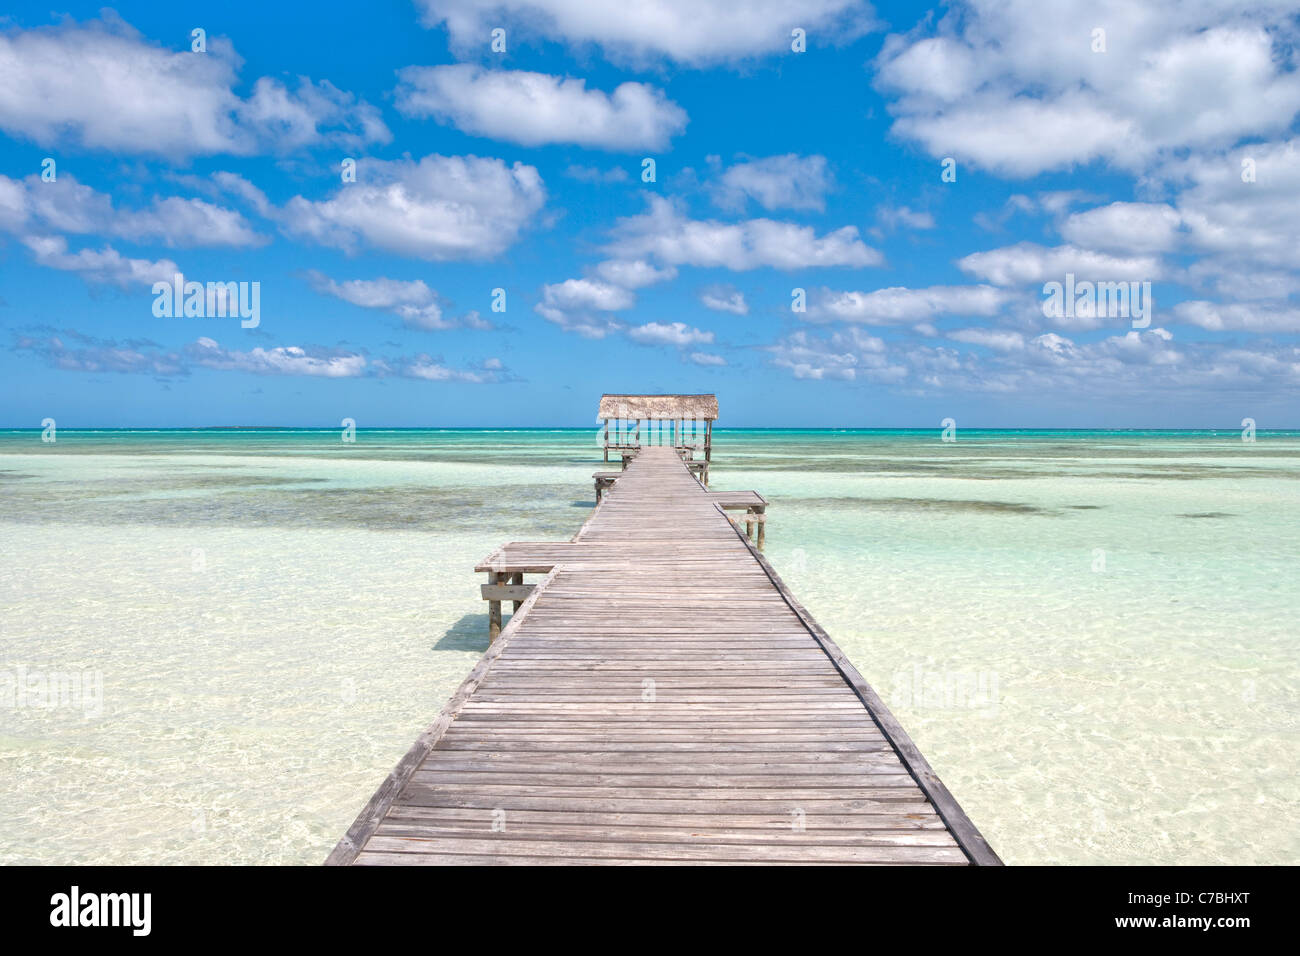 Pier over crystal water in the lagoon, Cayo Guillermo (Jardines del Rey), Ciego de Avila, Cuba - Stock Image